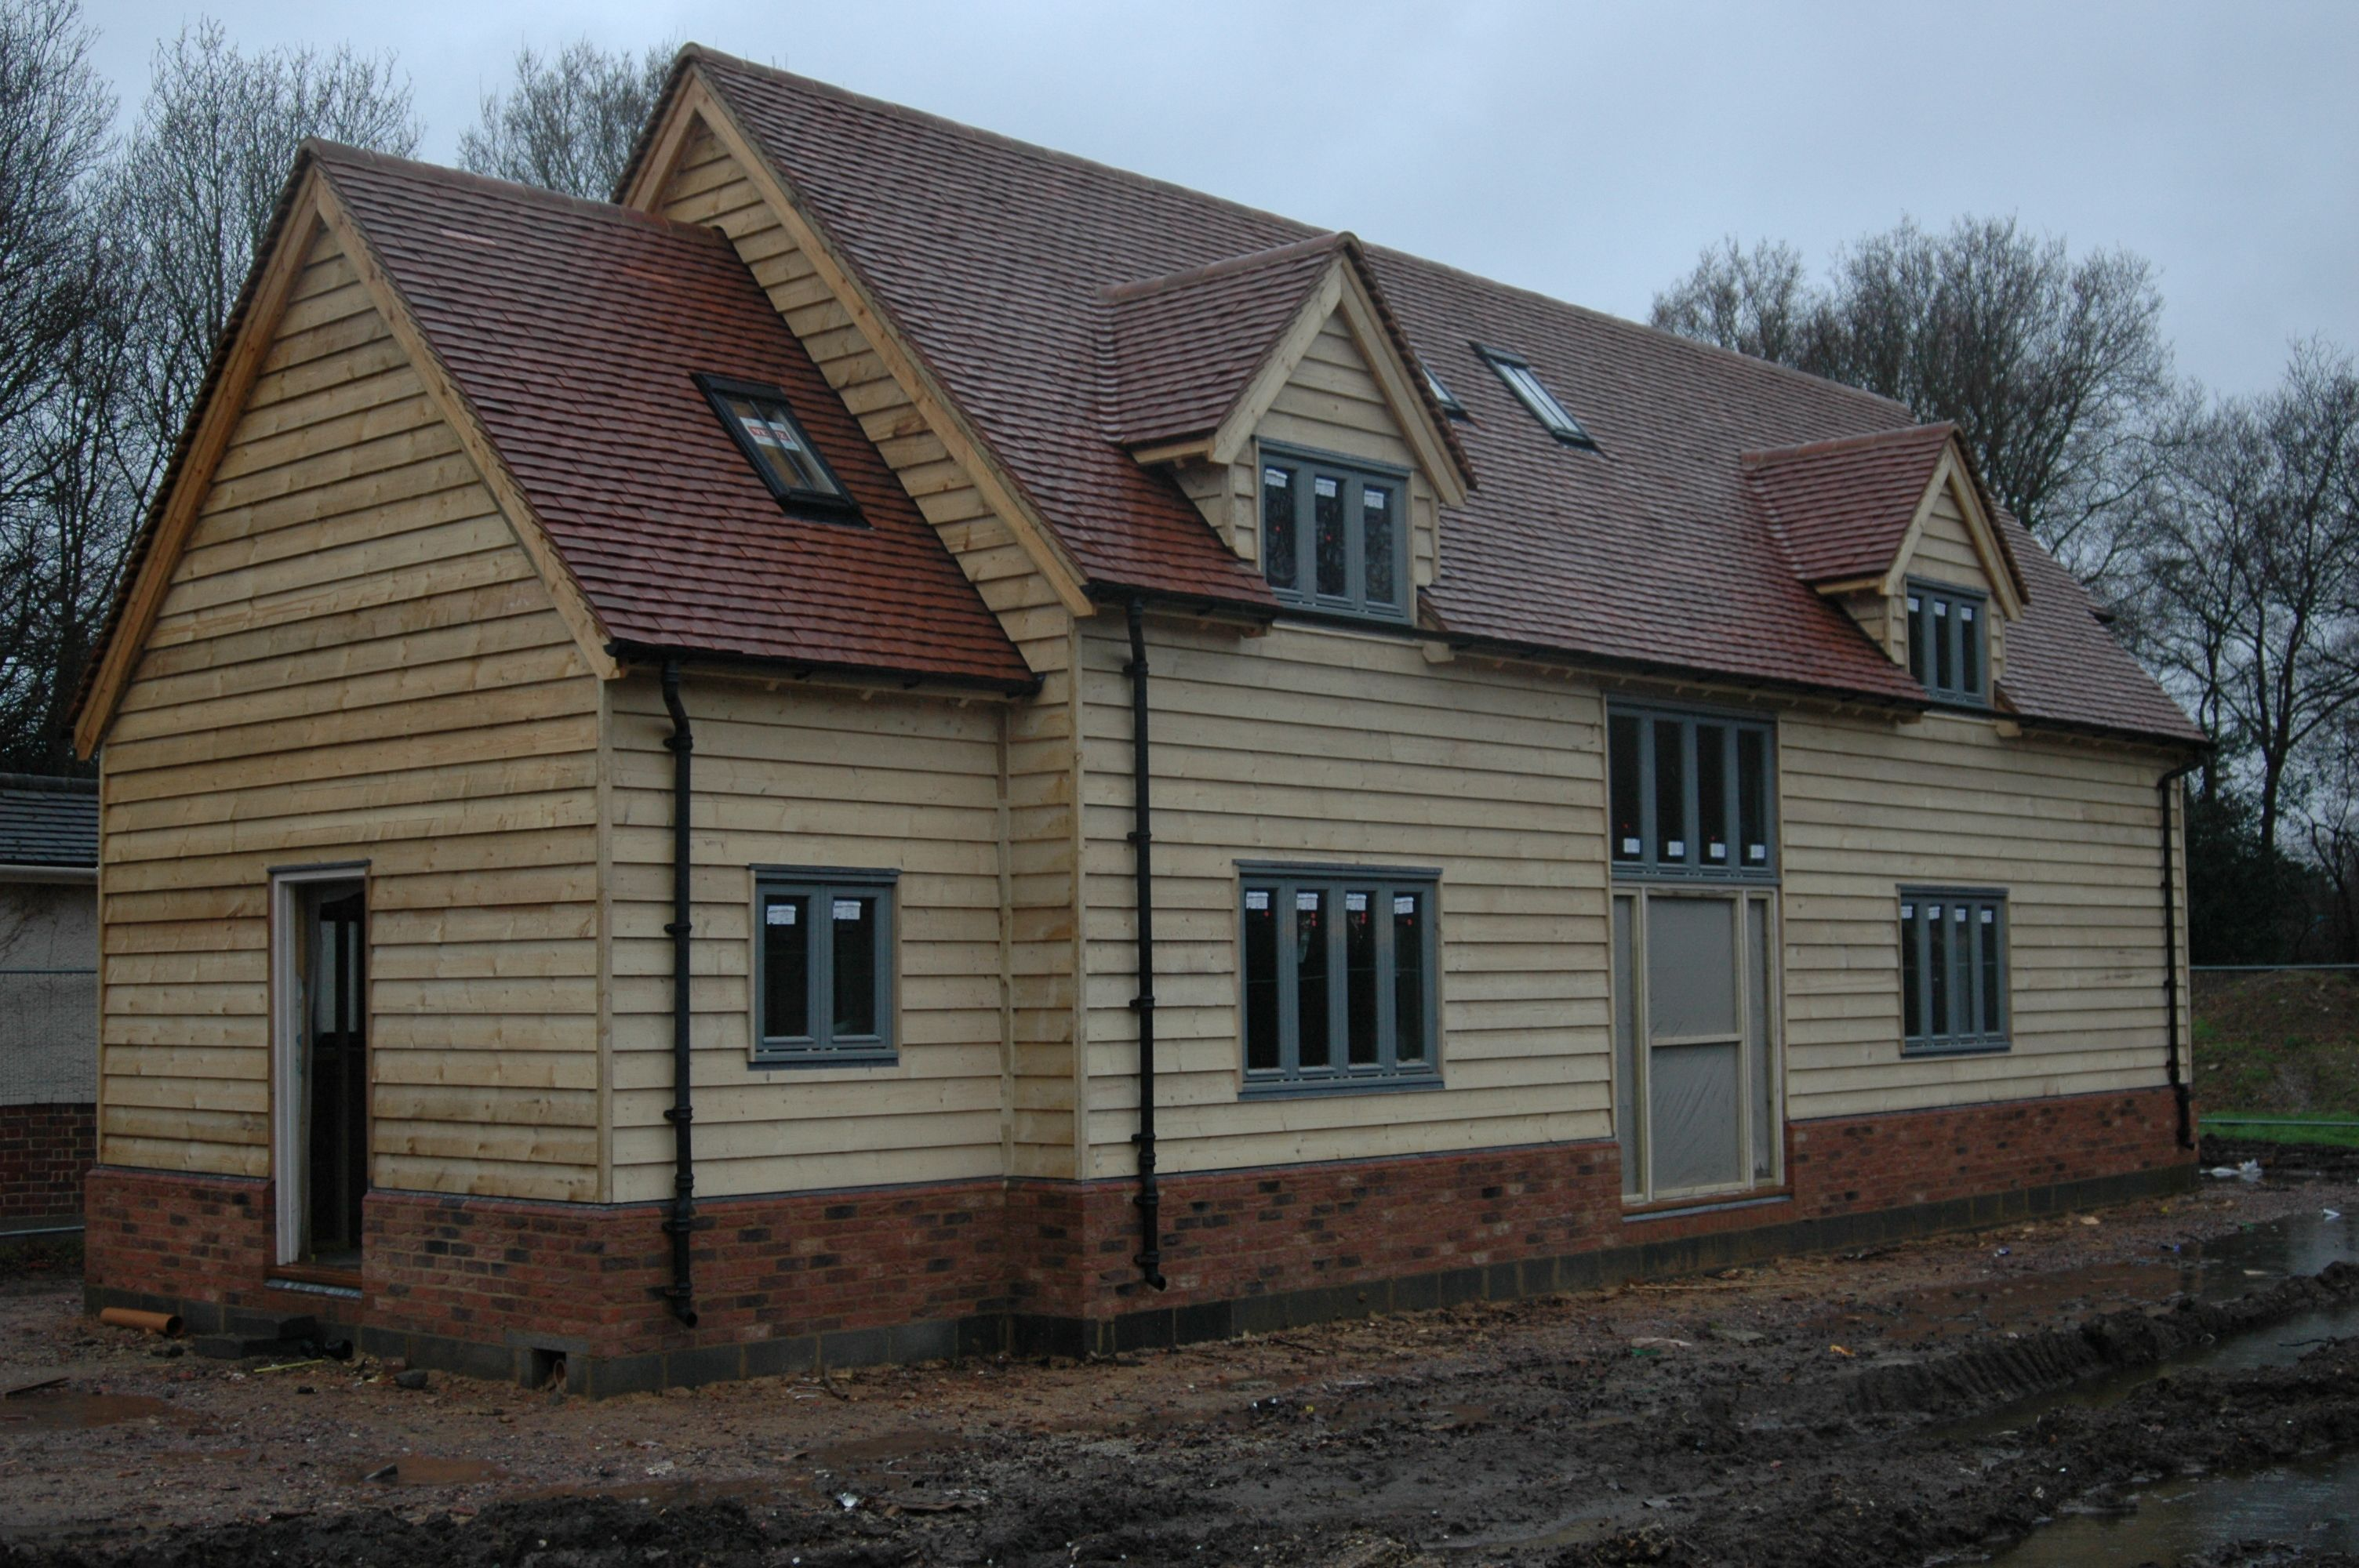 Border Oak Weatherboarded Barn Style Home Under